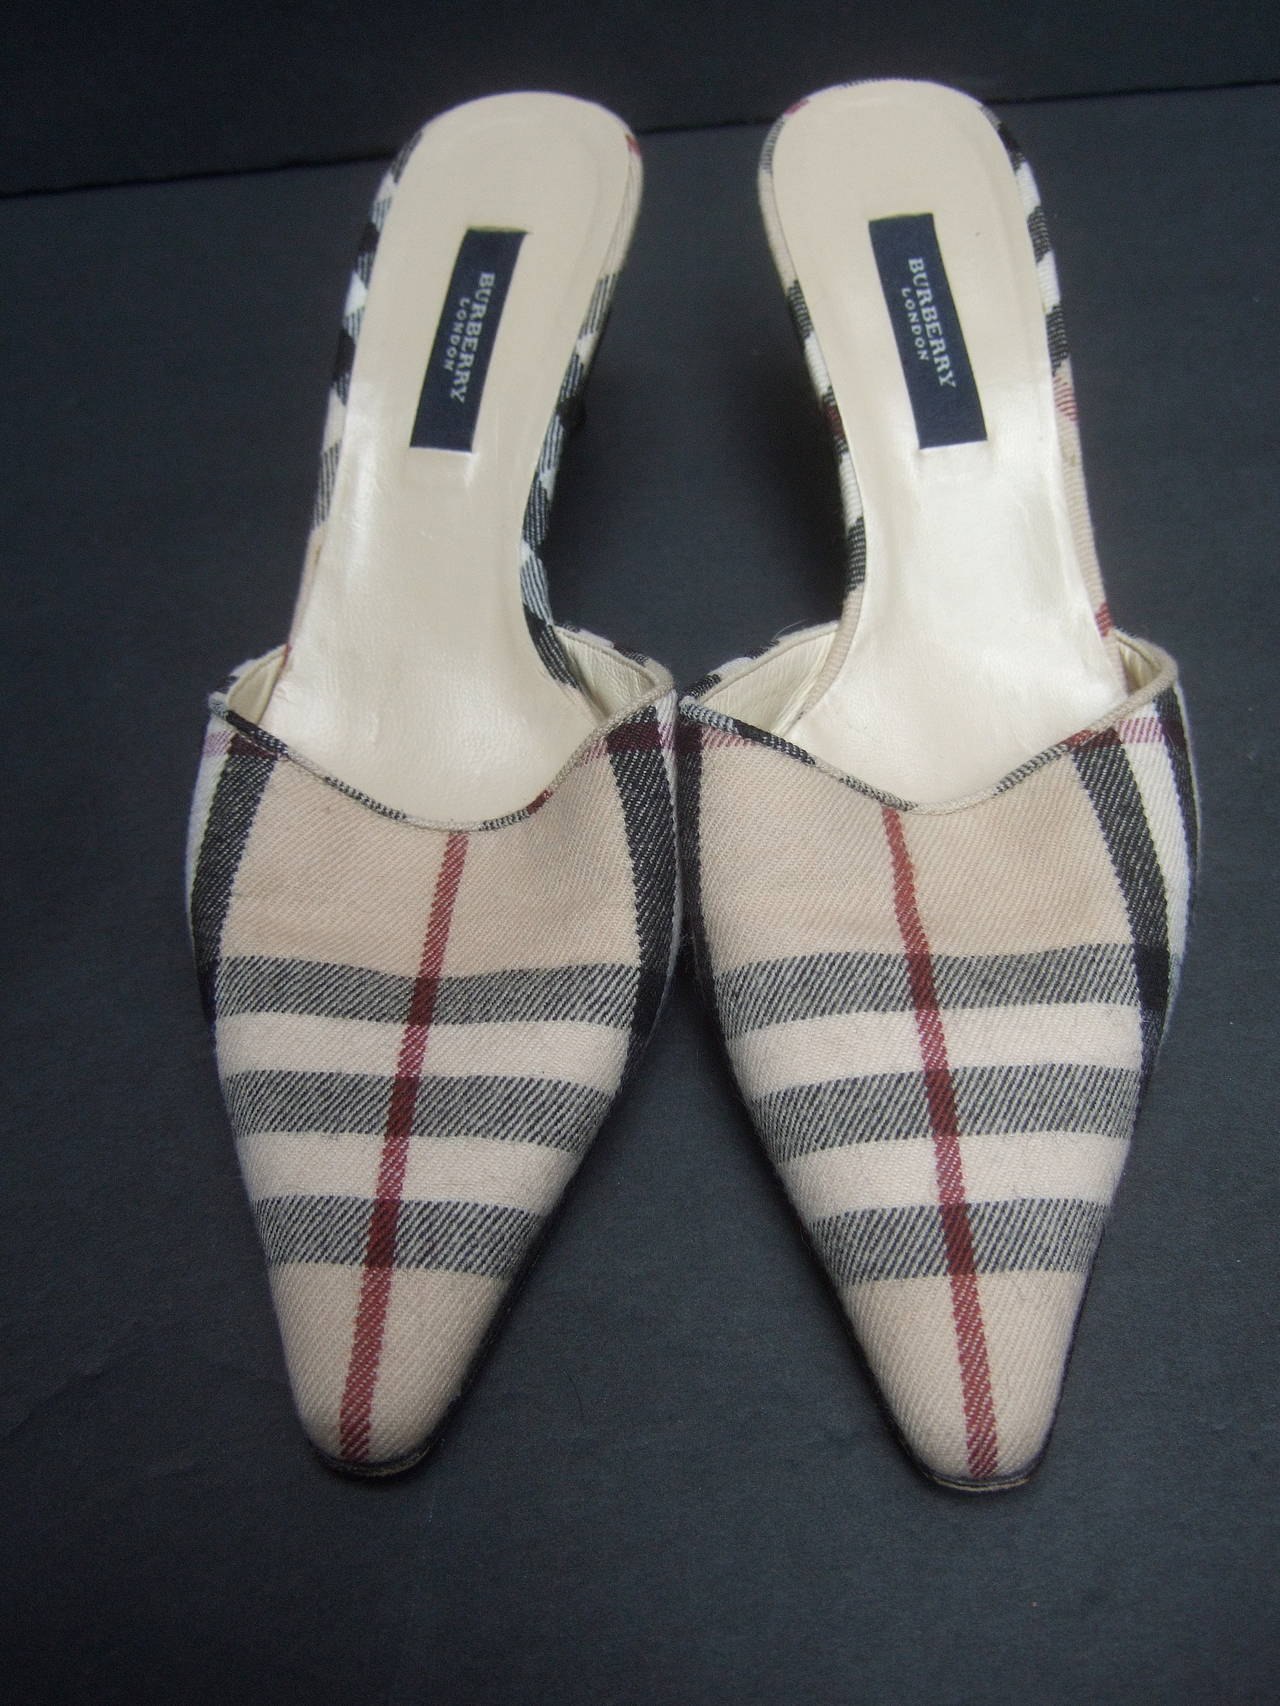 Burberry London Classic Nova Plaid Wool Mules Made in Italy Size 37.5 3